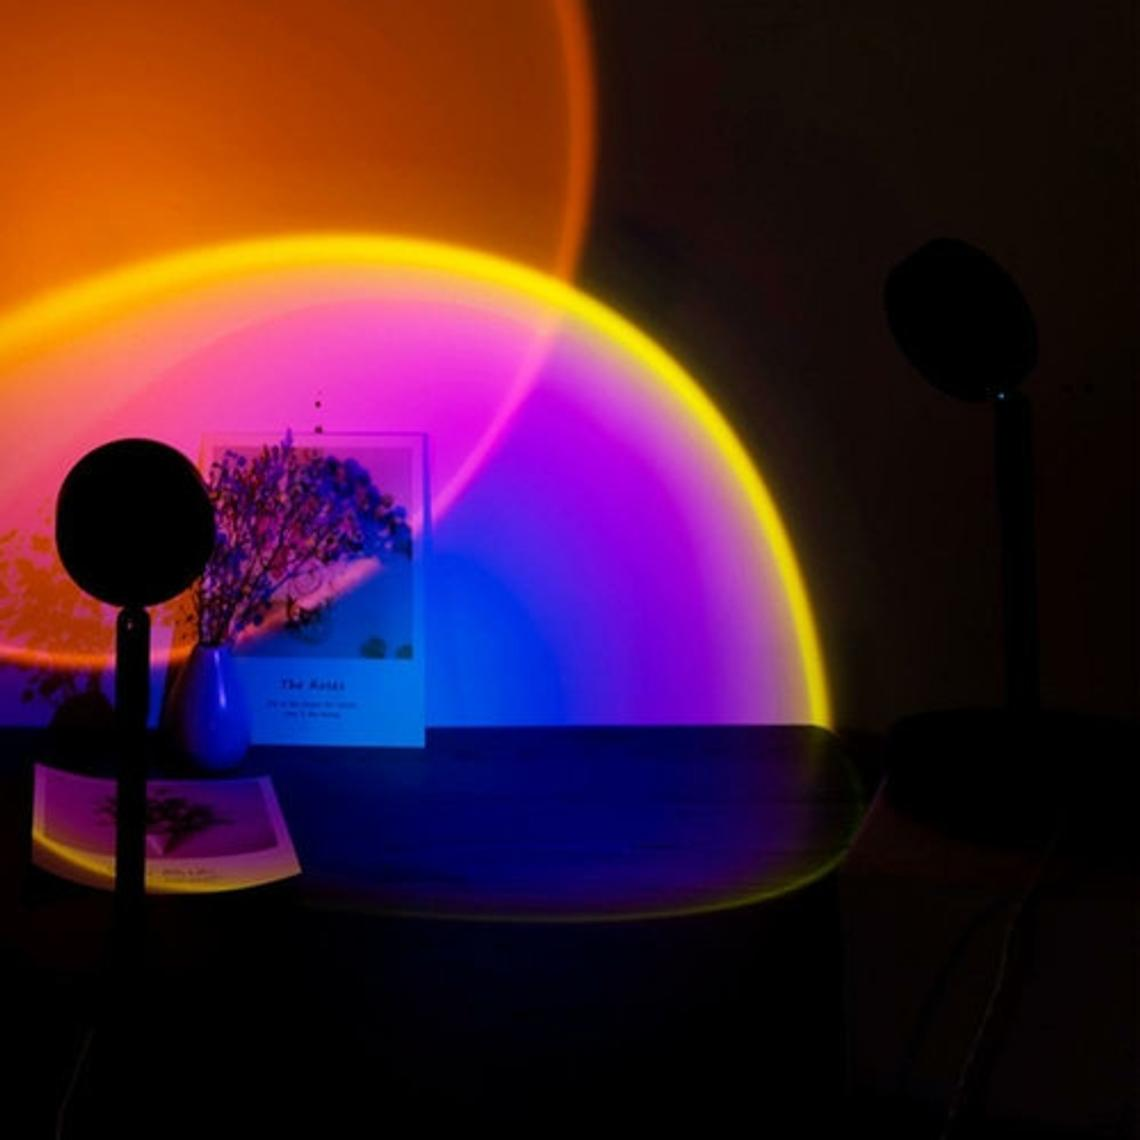 sunset projection lamps elle muse